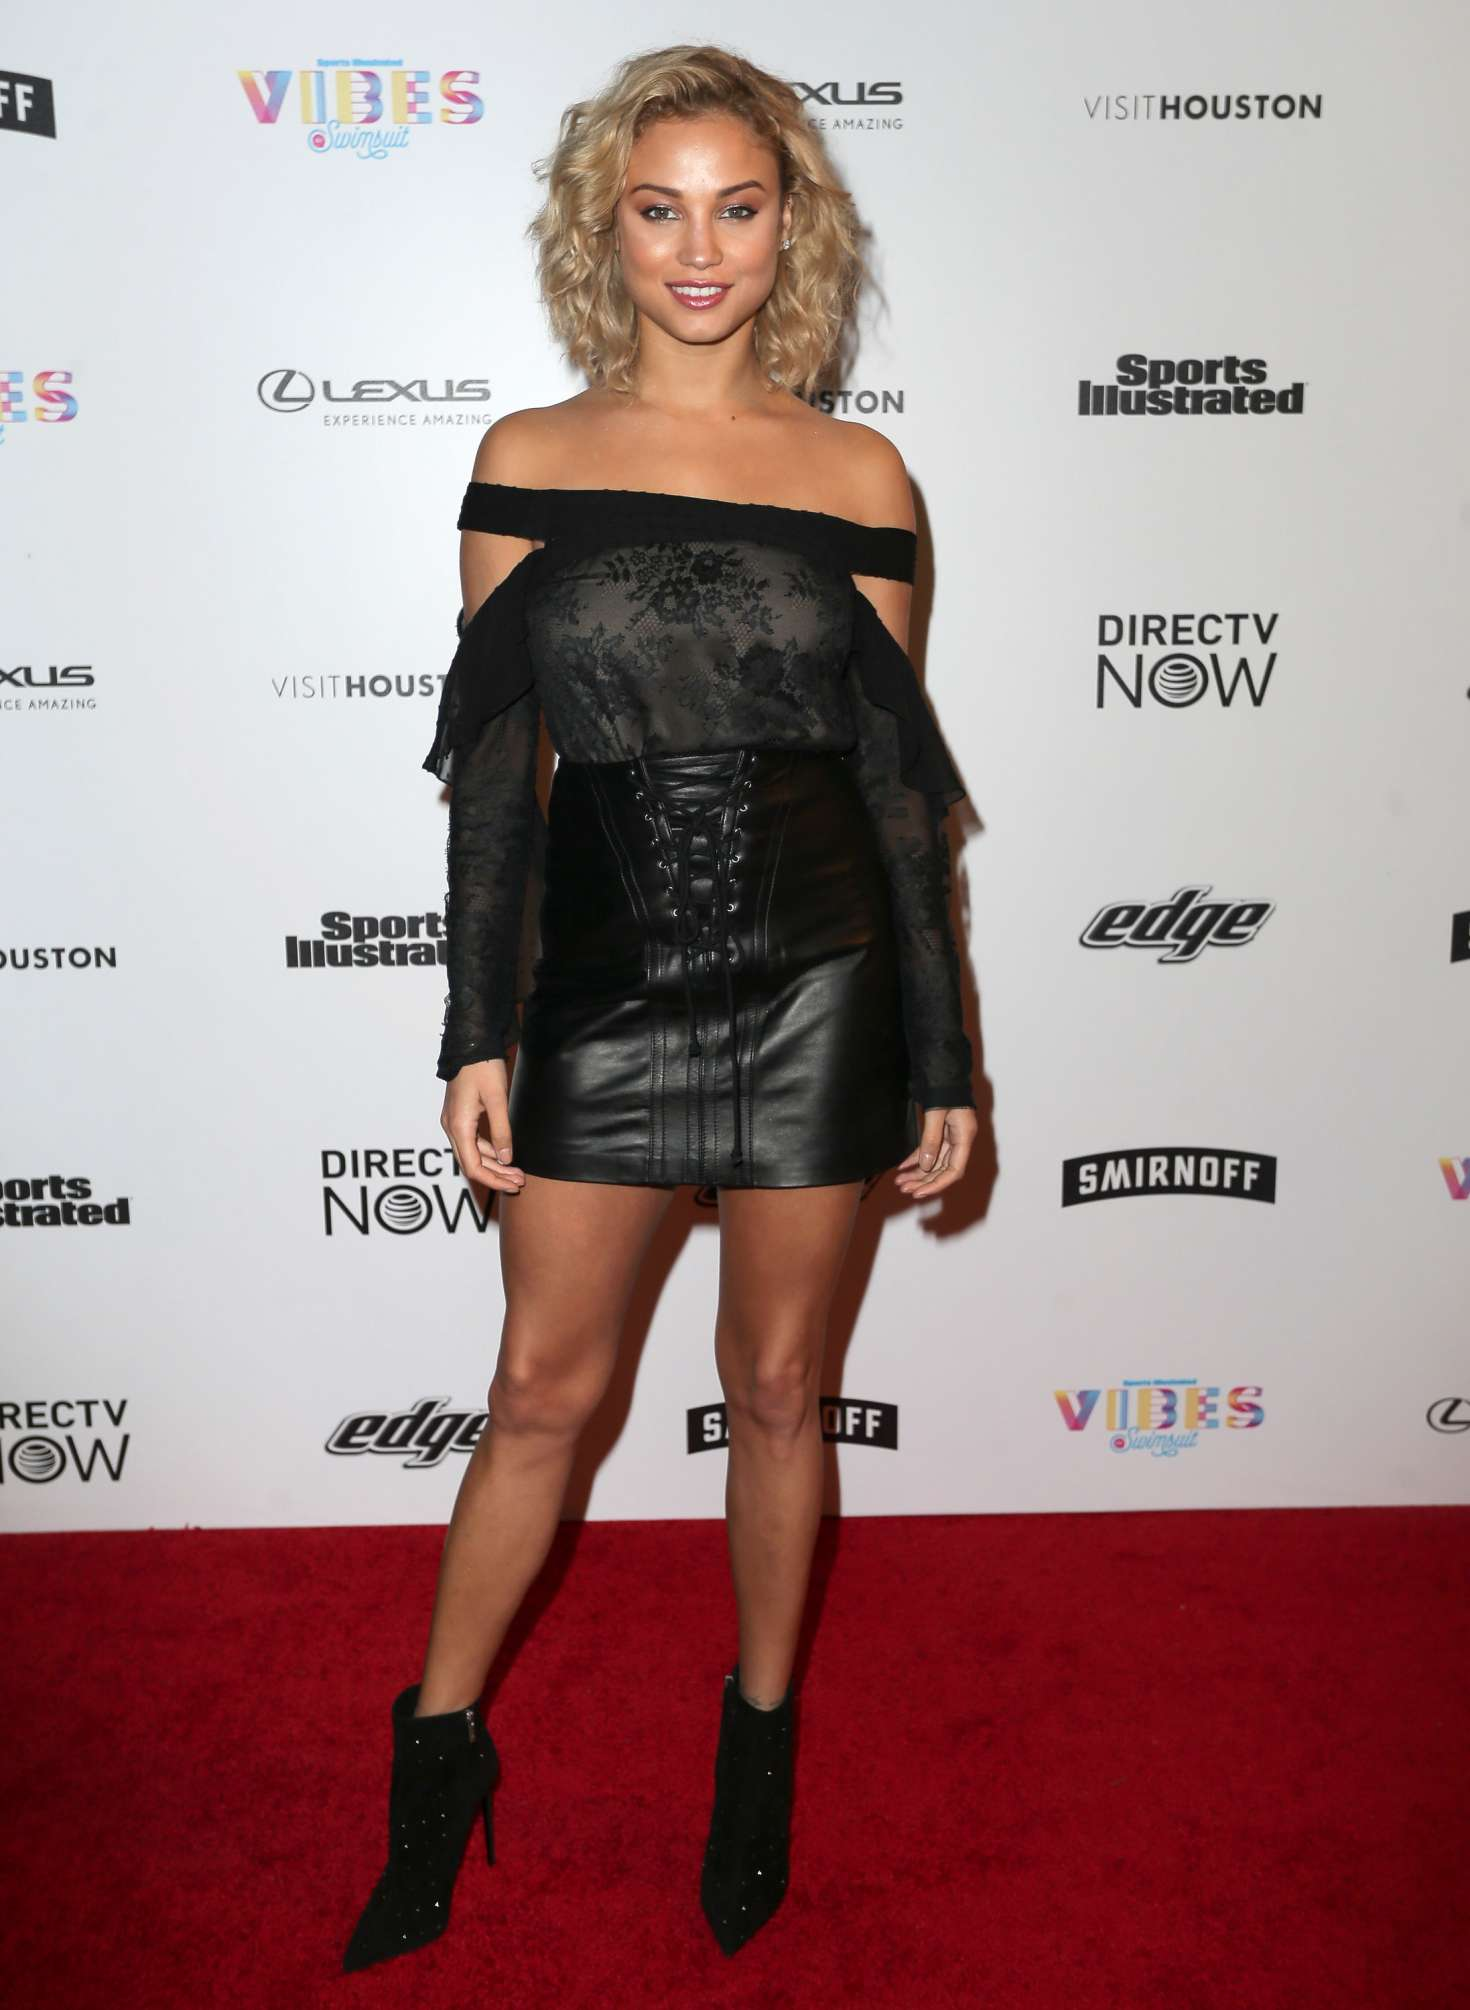 Rose Bertram - VIBES By Sports Illustrated Swimsuit 2017 Launch in Houston